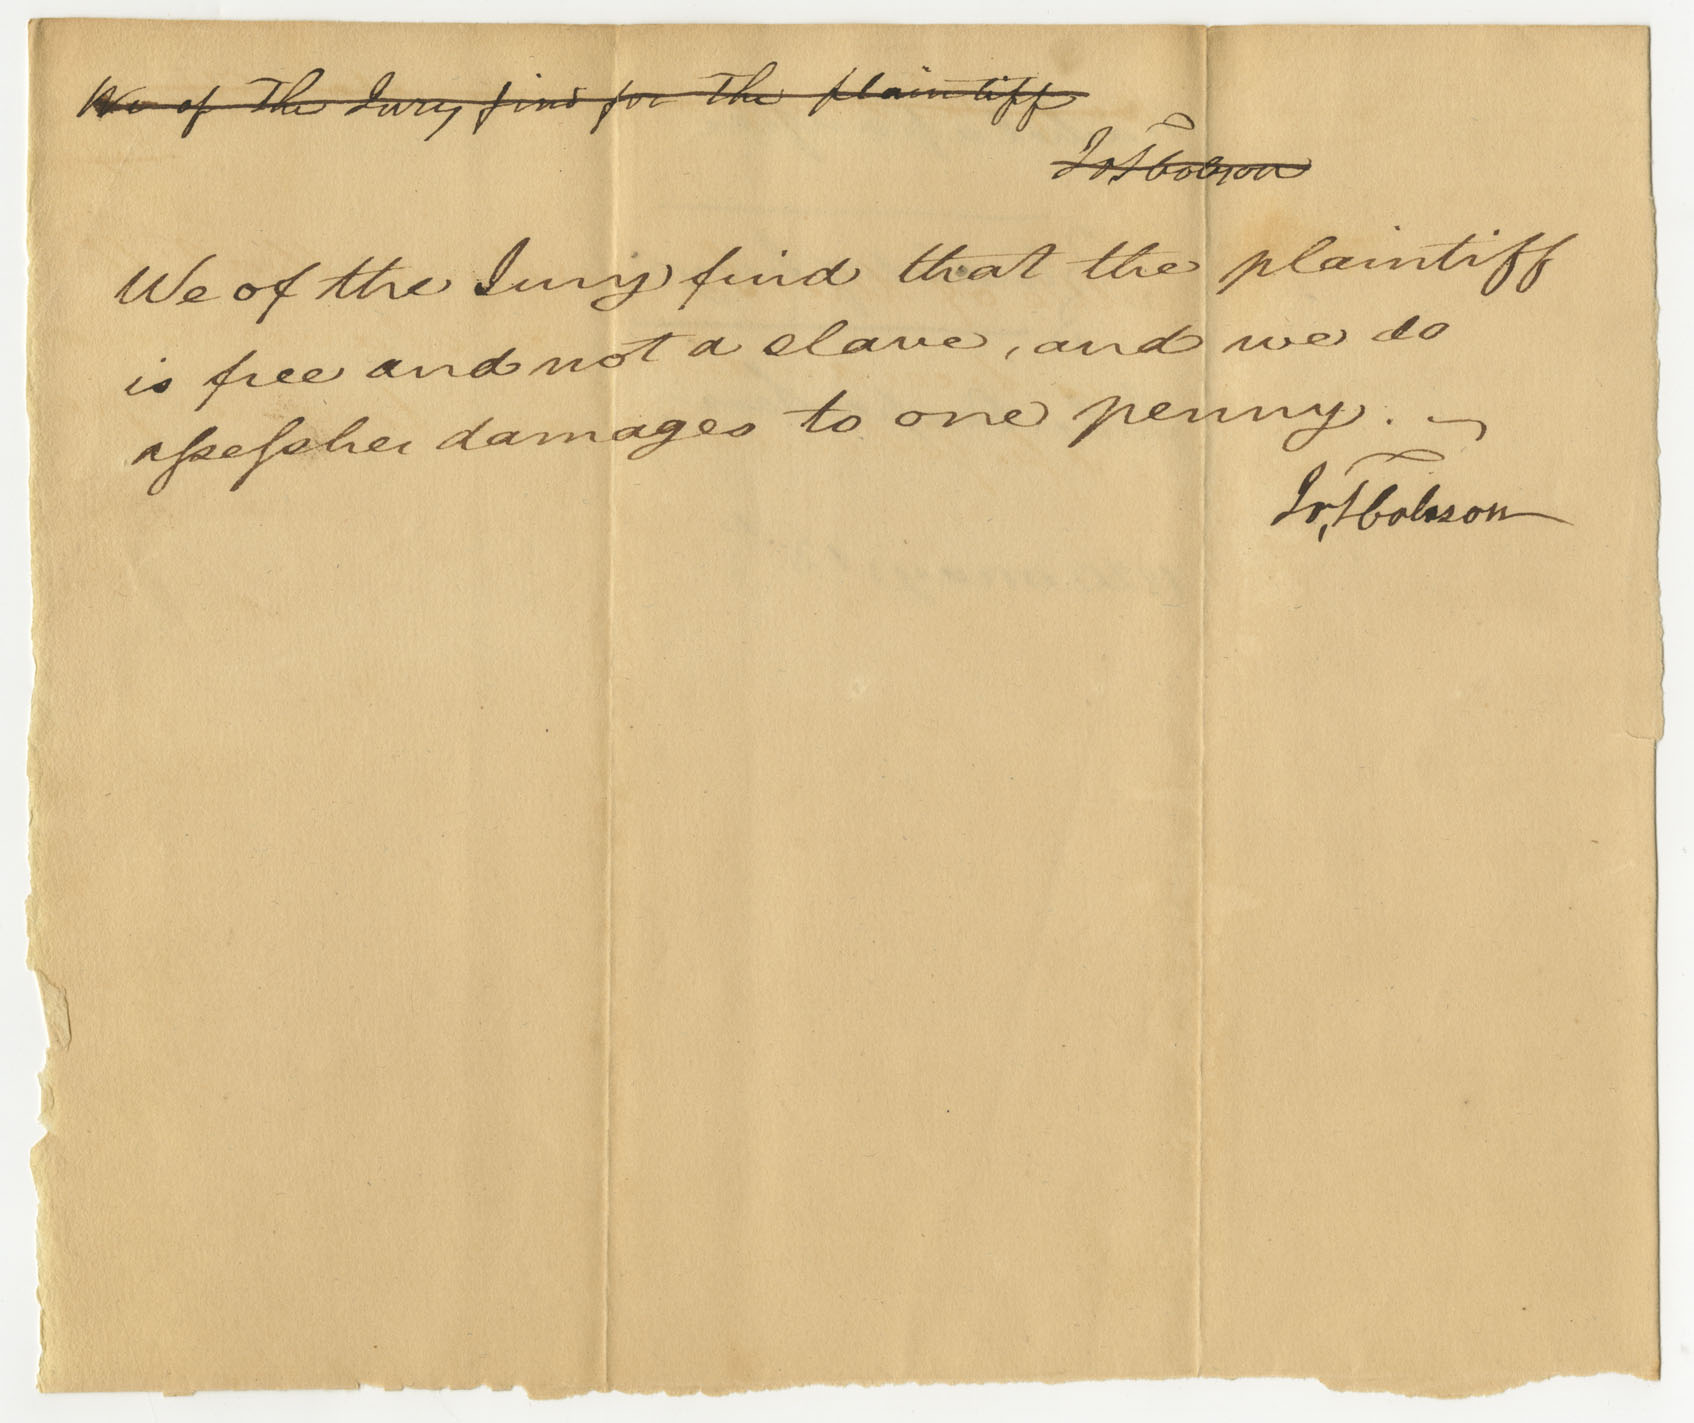 Verdict awarding Rachel Findlay her freedom, May 13, 1820, Powhatan County (Va.) Judgments (Freedom Suits), 1807-1844, image courtesy of the  Library of Virginia.